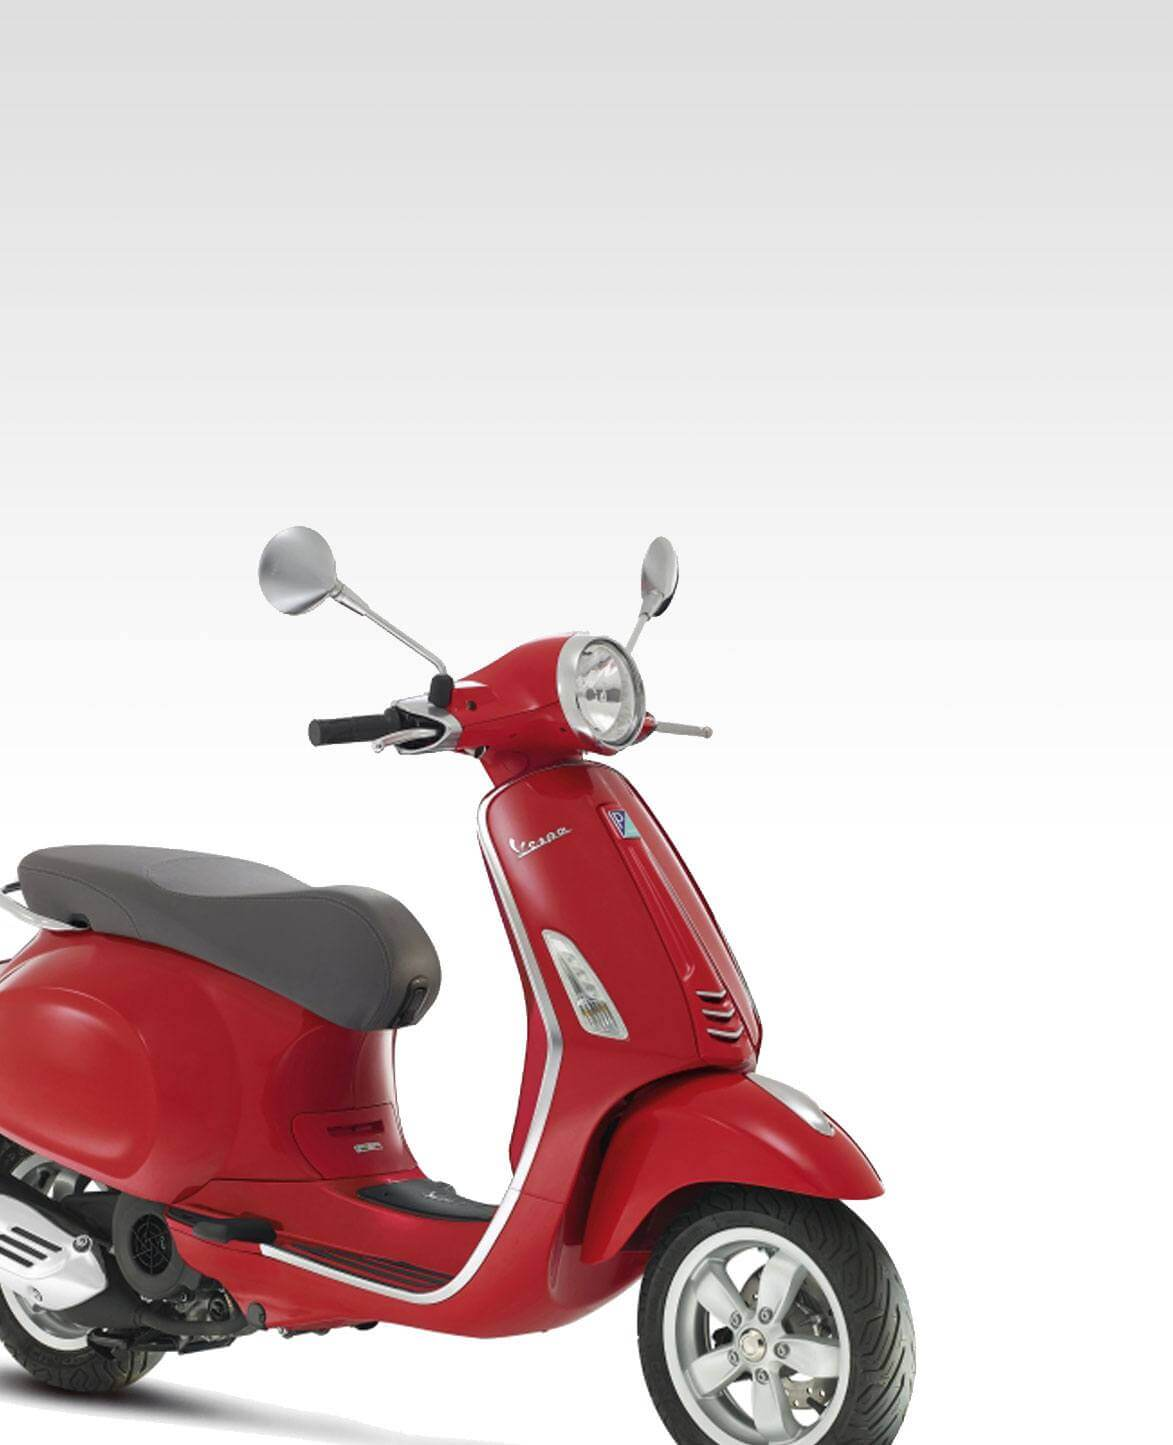 Vespa Product Slide 2